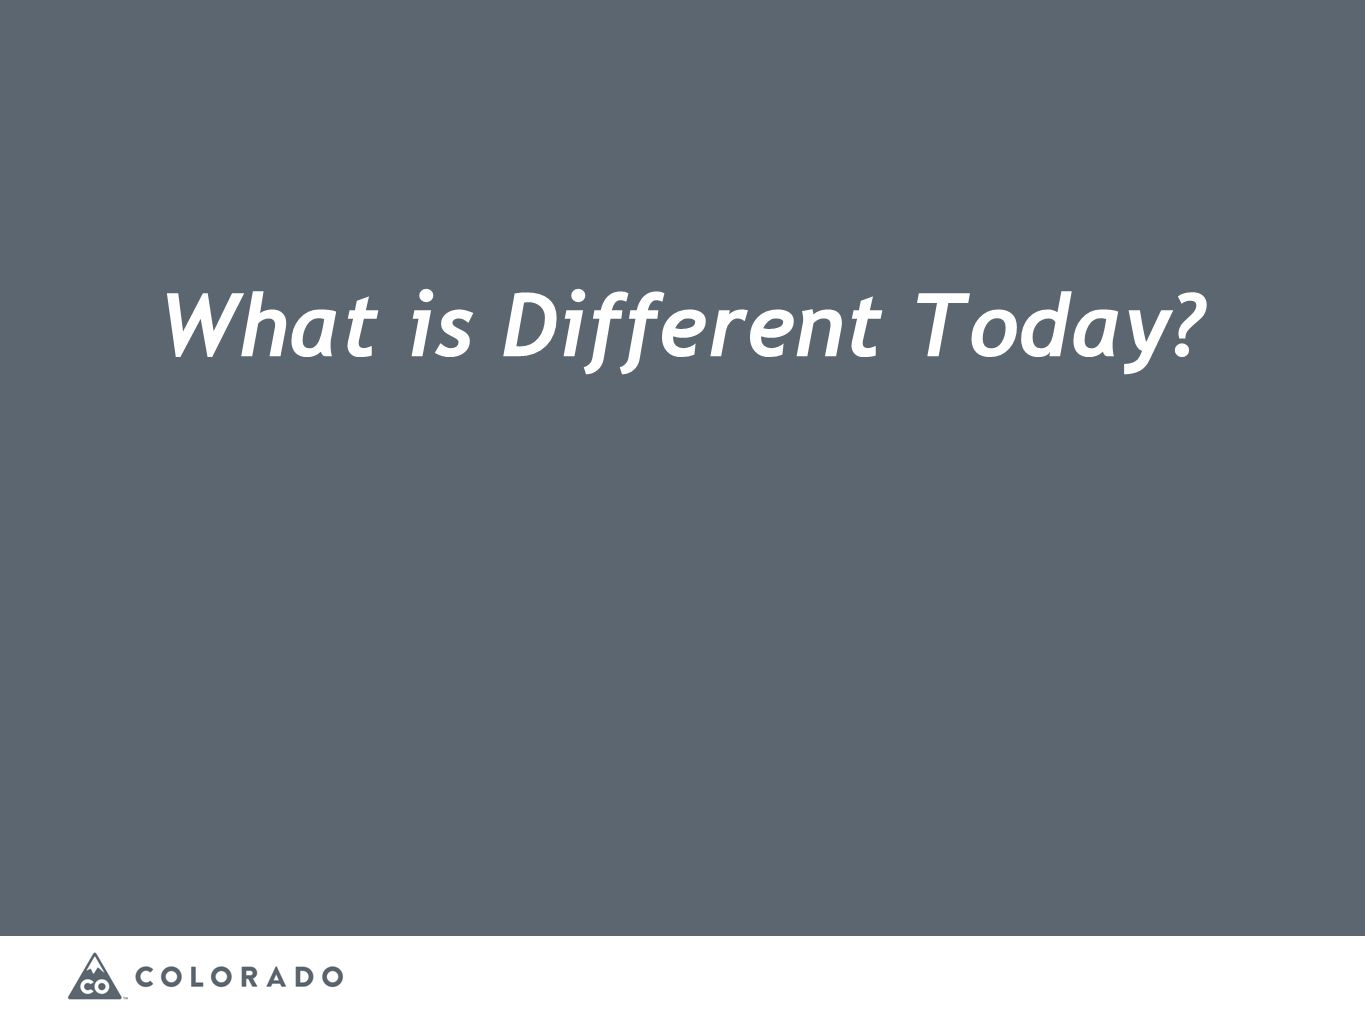 What is Different Today